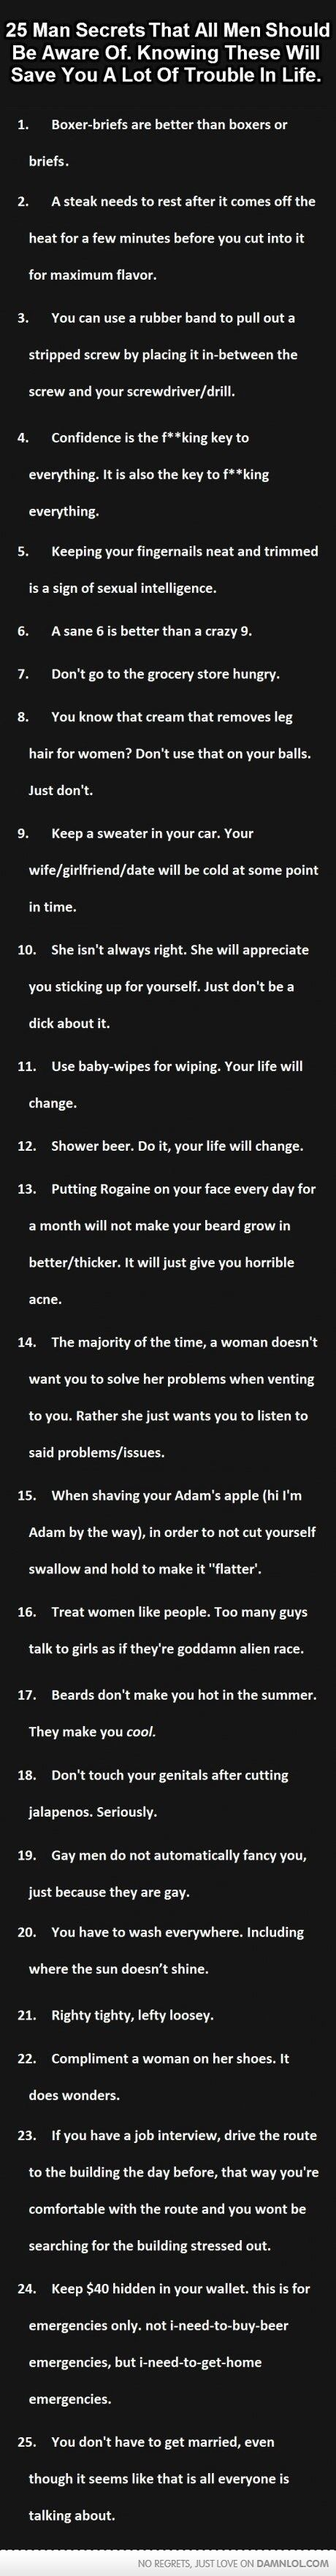 Pro Tips For Most Guys